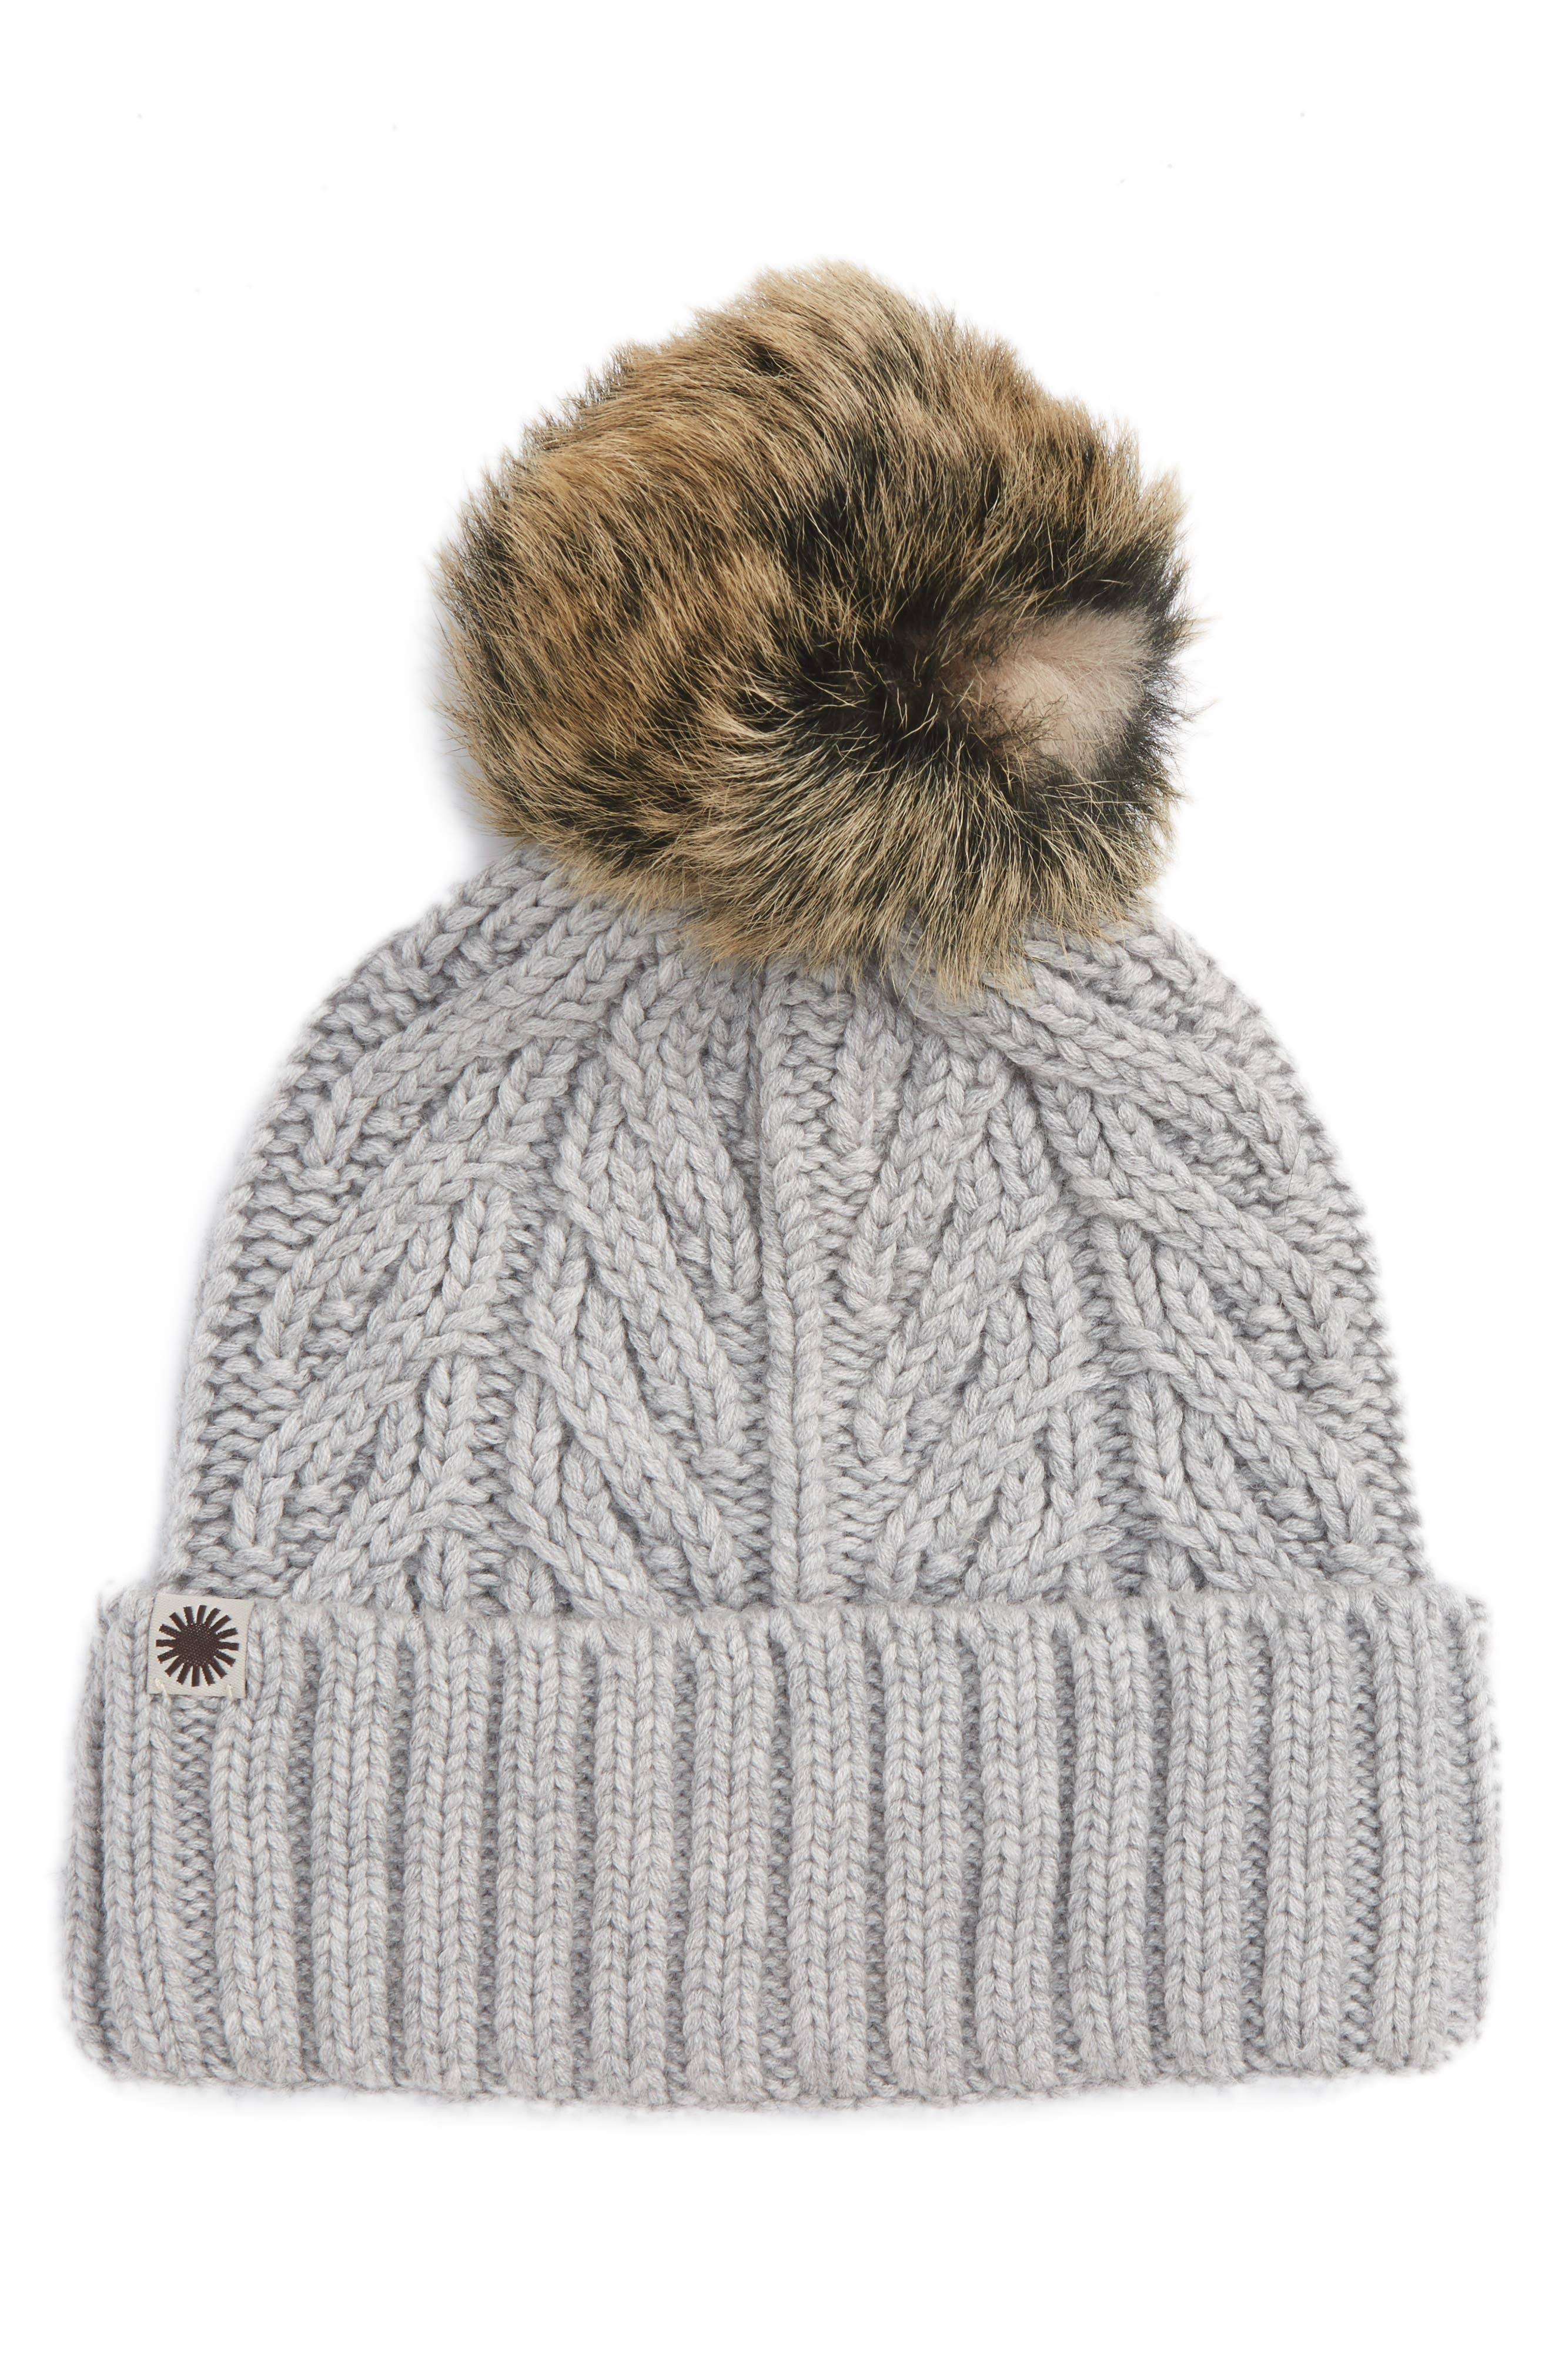 Main Image - UGG® Cable Knit Cuff Hat with Genuine Shearling Pom